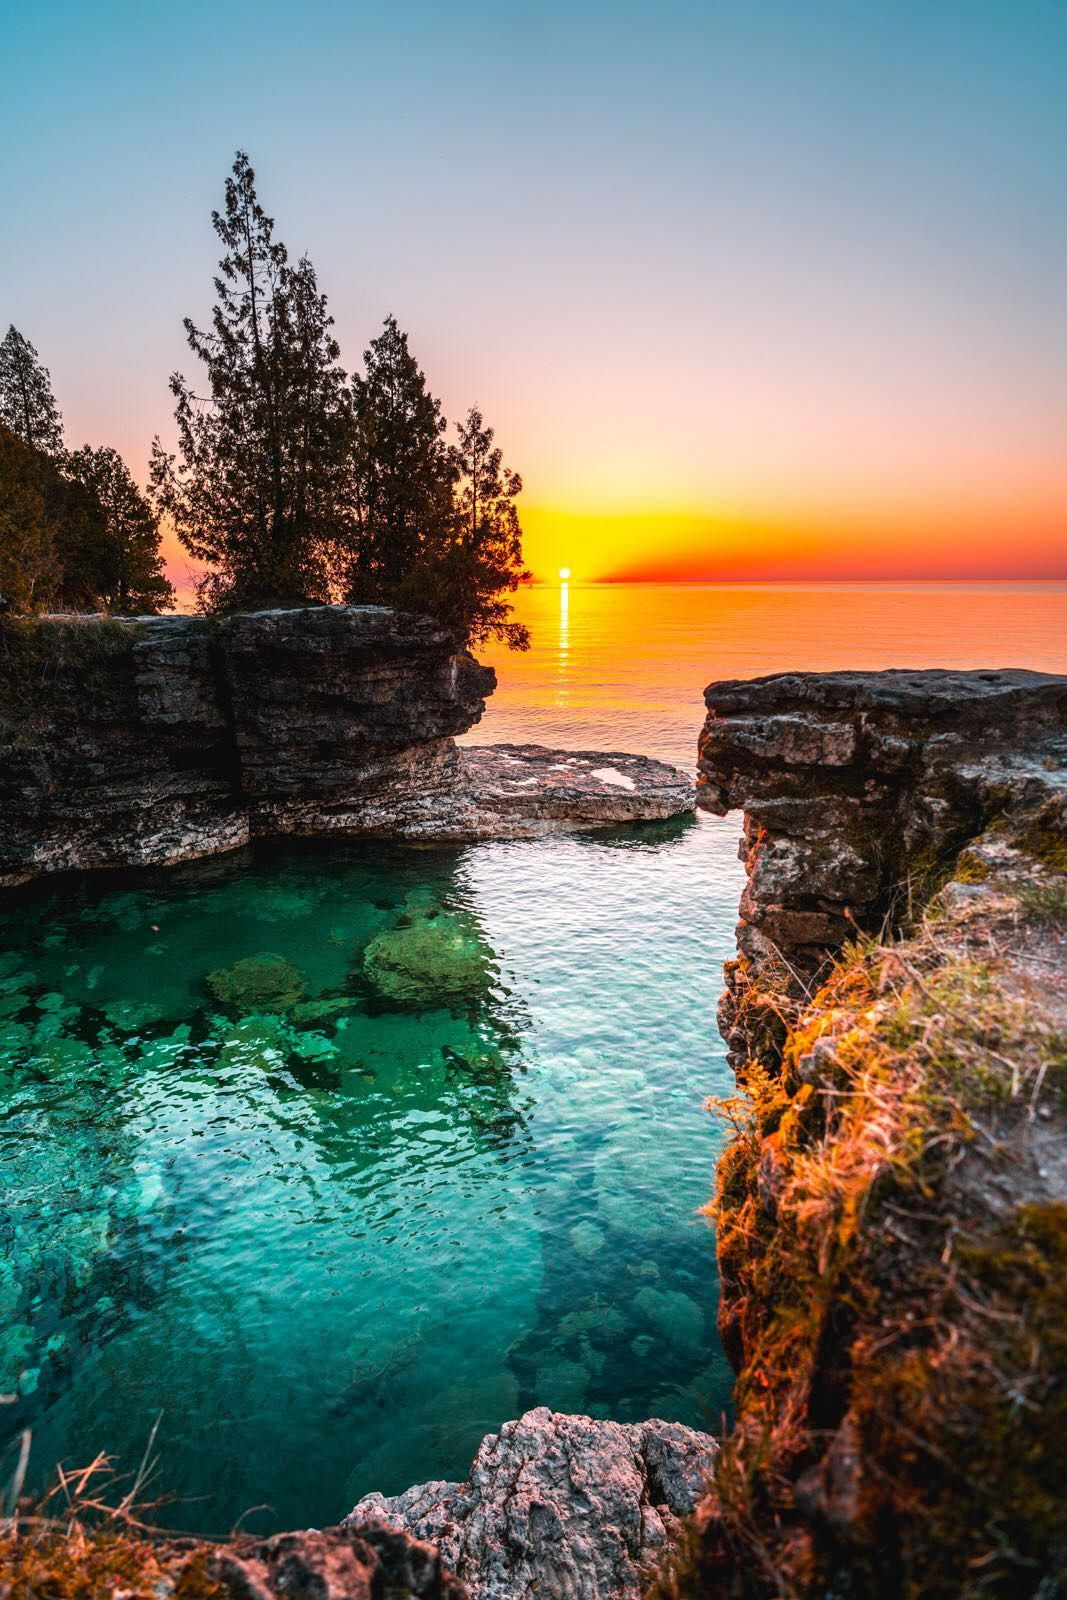 Nature Beautiful Scenery The Crystal Clear Water Of Lake Michigan At Cave Point Park At Sunrise 10 Beautiful Landscapes Nature Pictures Nature Photography